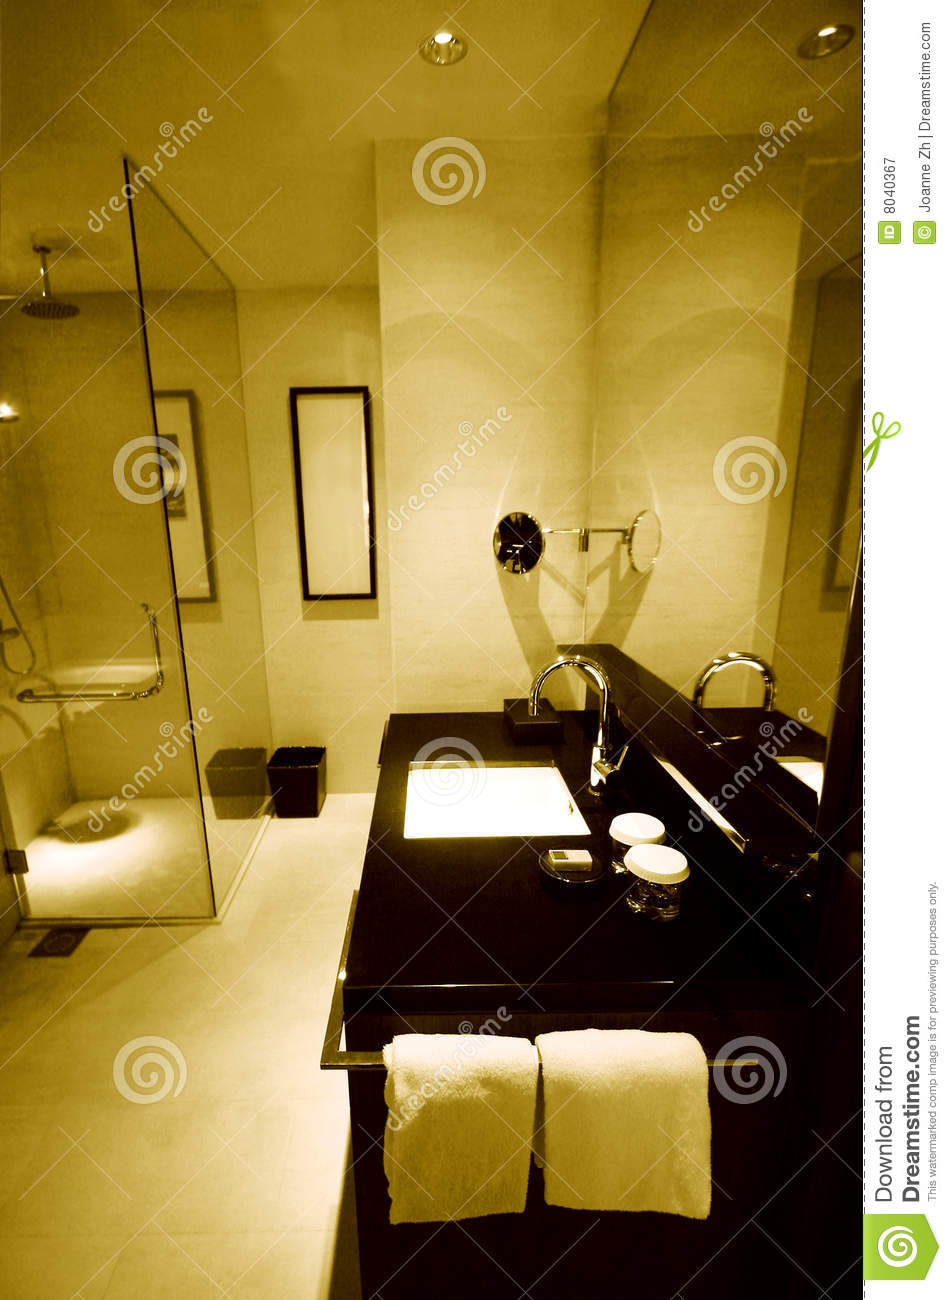 New Luxury Resort Hotel Bathrooms Royalty Free Stock